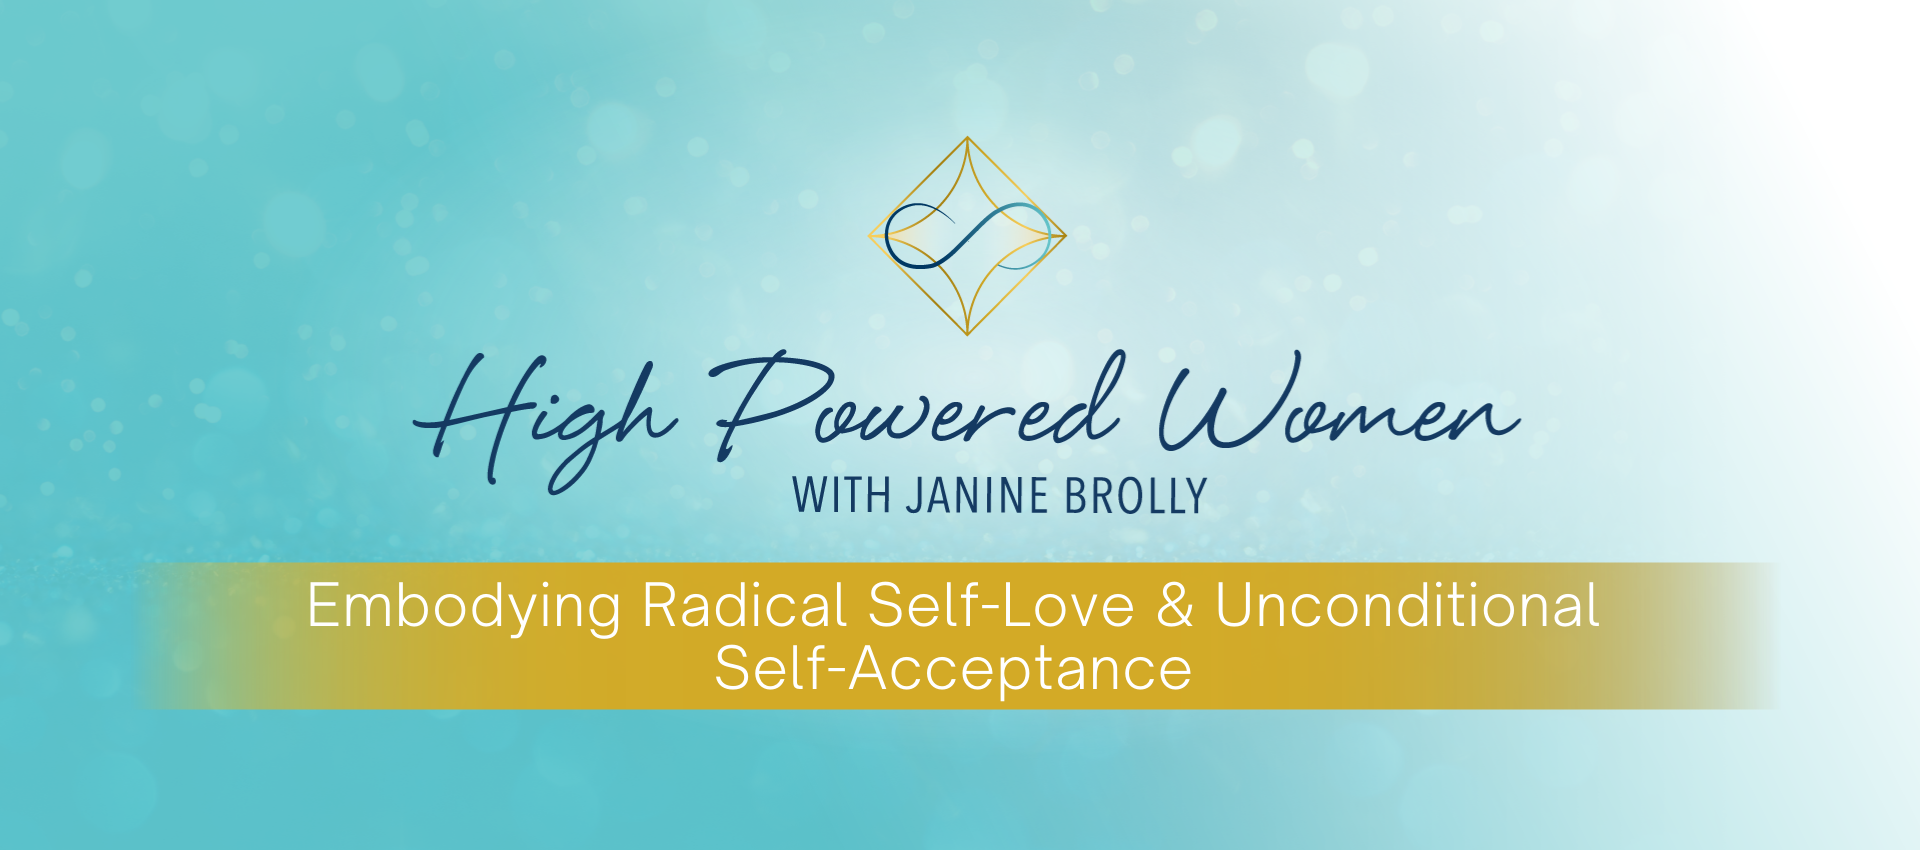 Embodying radical self-love and unconditional self-acceptance